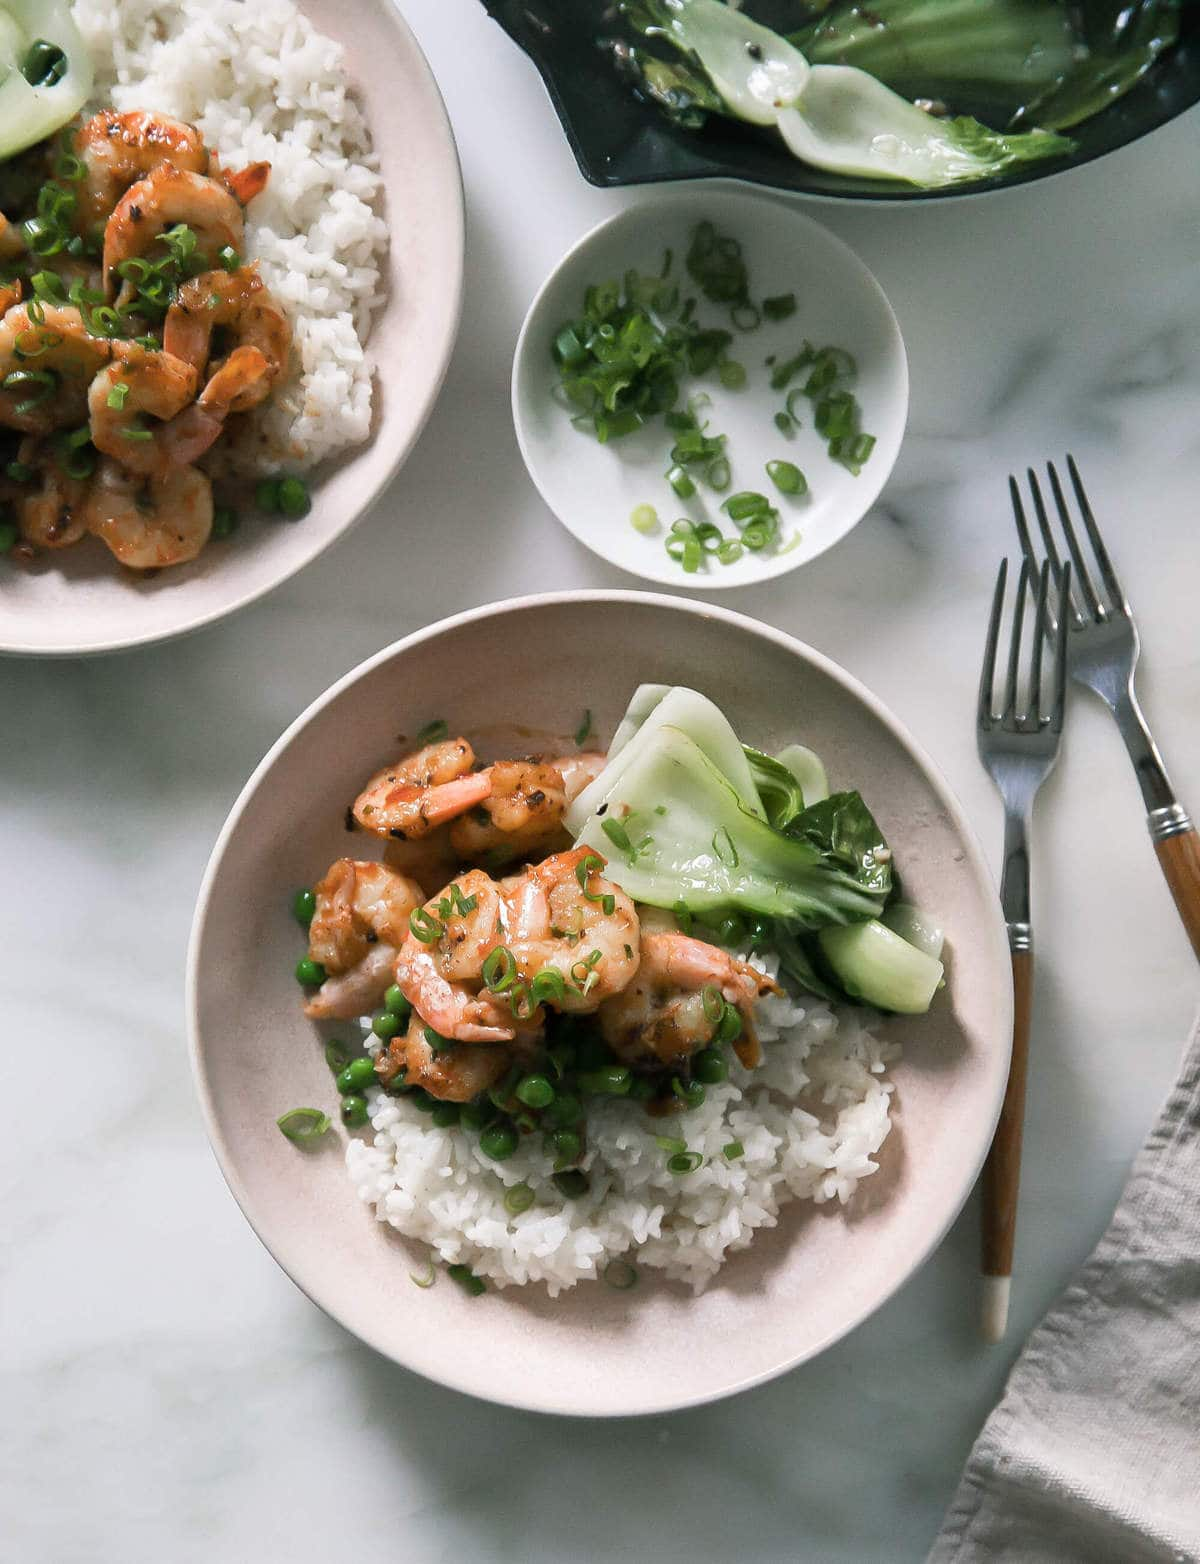 Ginger Shrimp Stir-Fry with Garlic Bok Choy